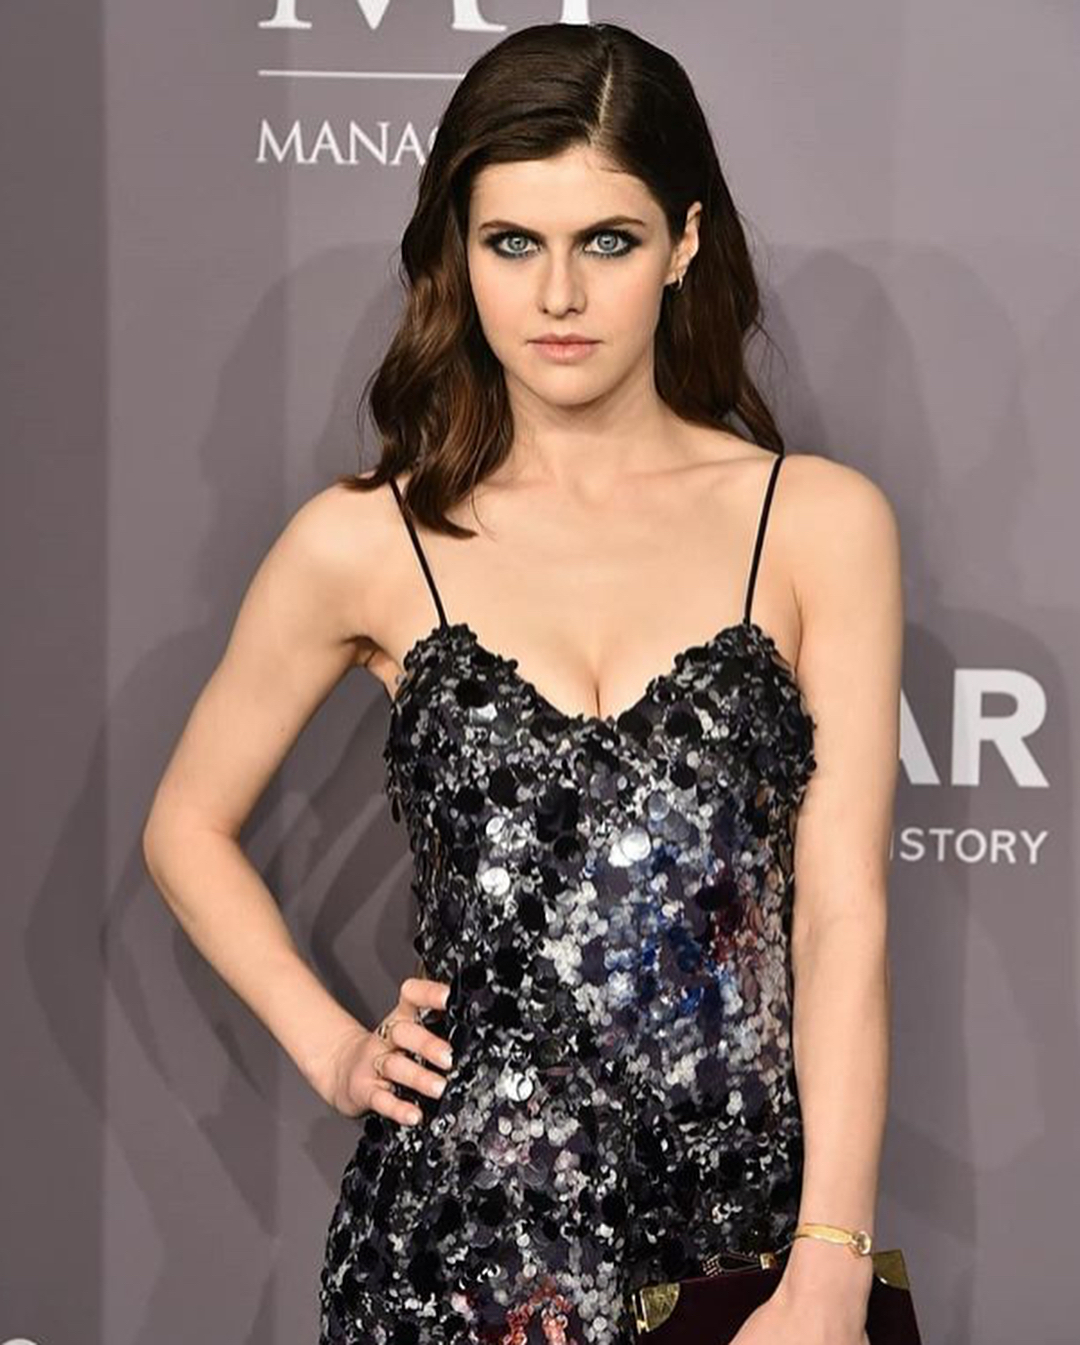 Alexandra Daddario Wiki, Age, Height, Weight, Boyfriend, Family - Being Viral Star - See Whats